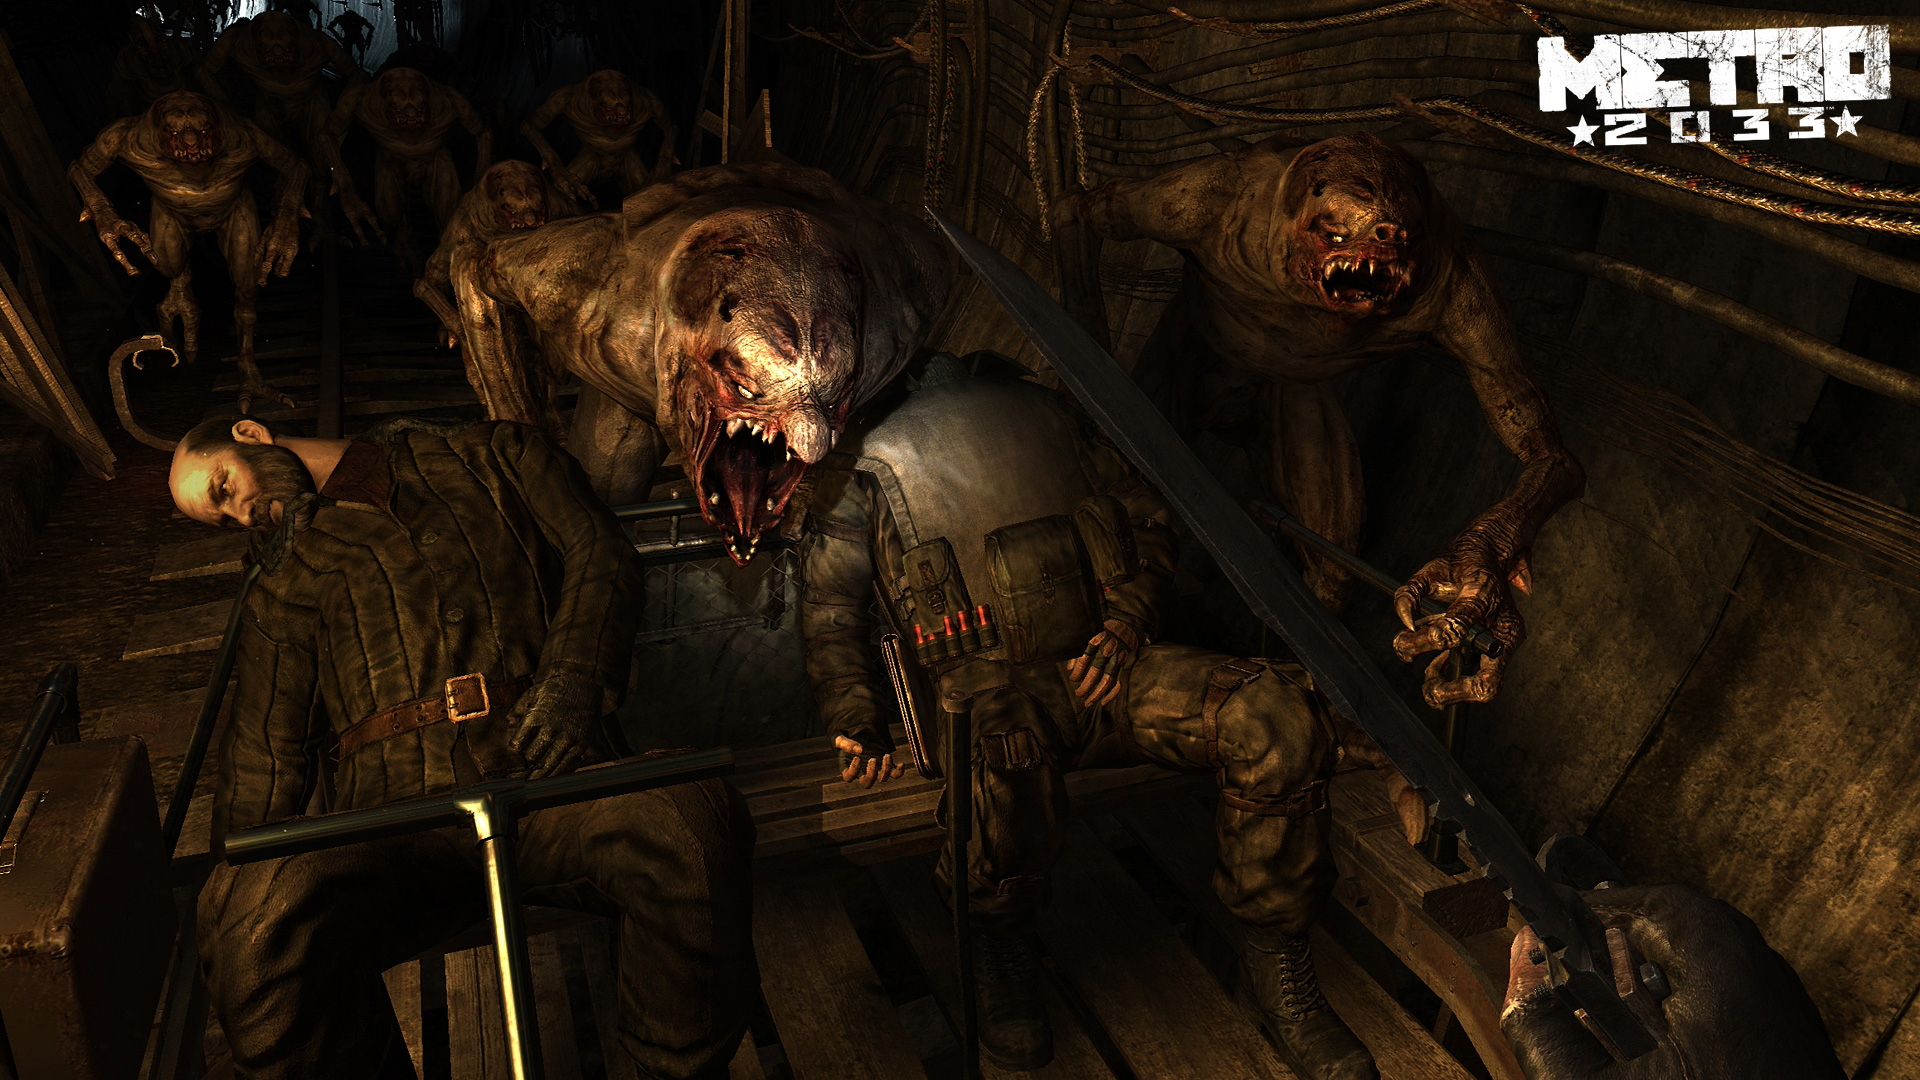 Metro 2033 Wallpaper in 1920x1080